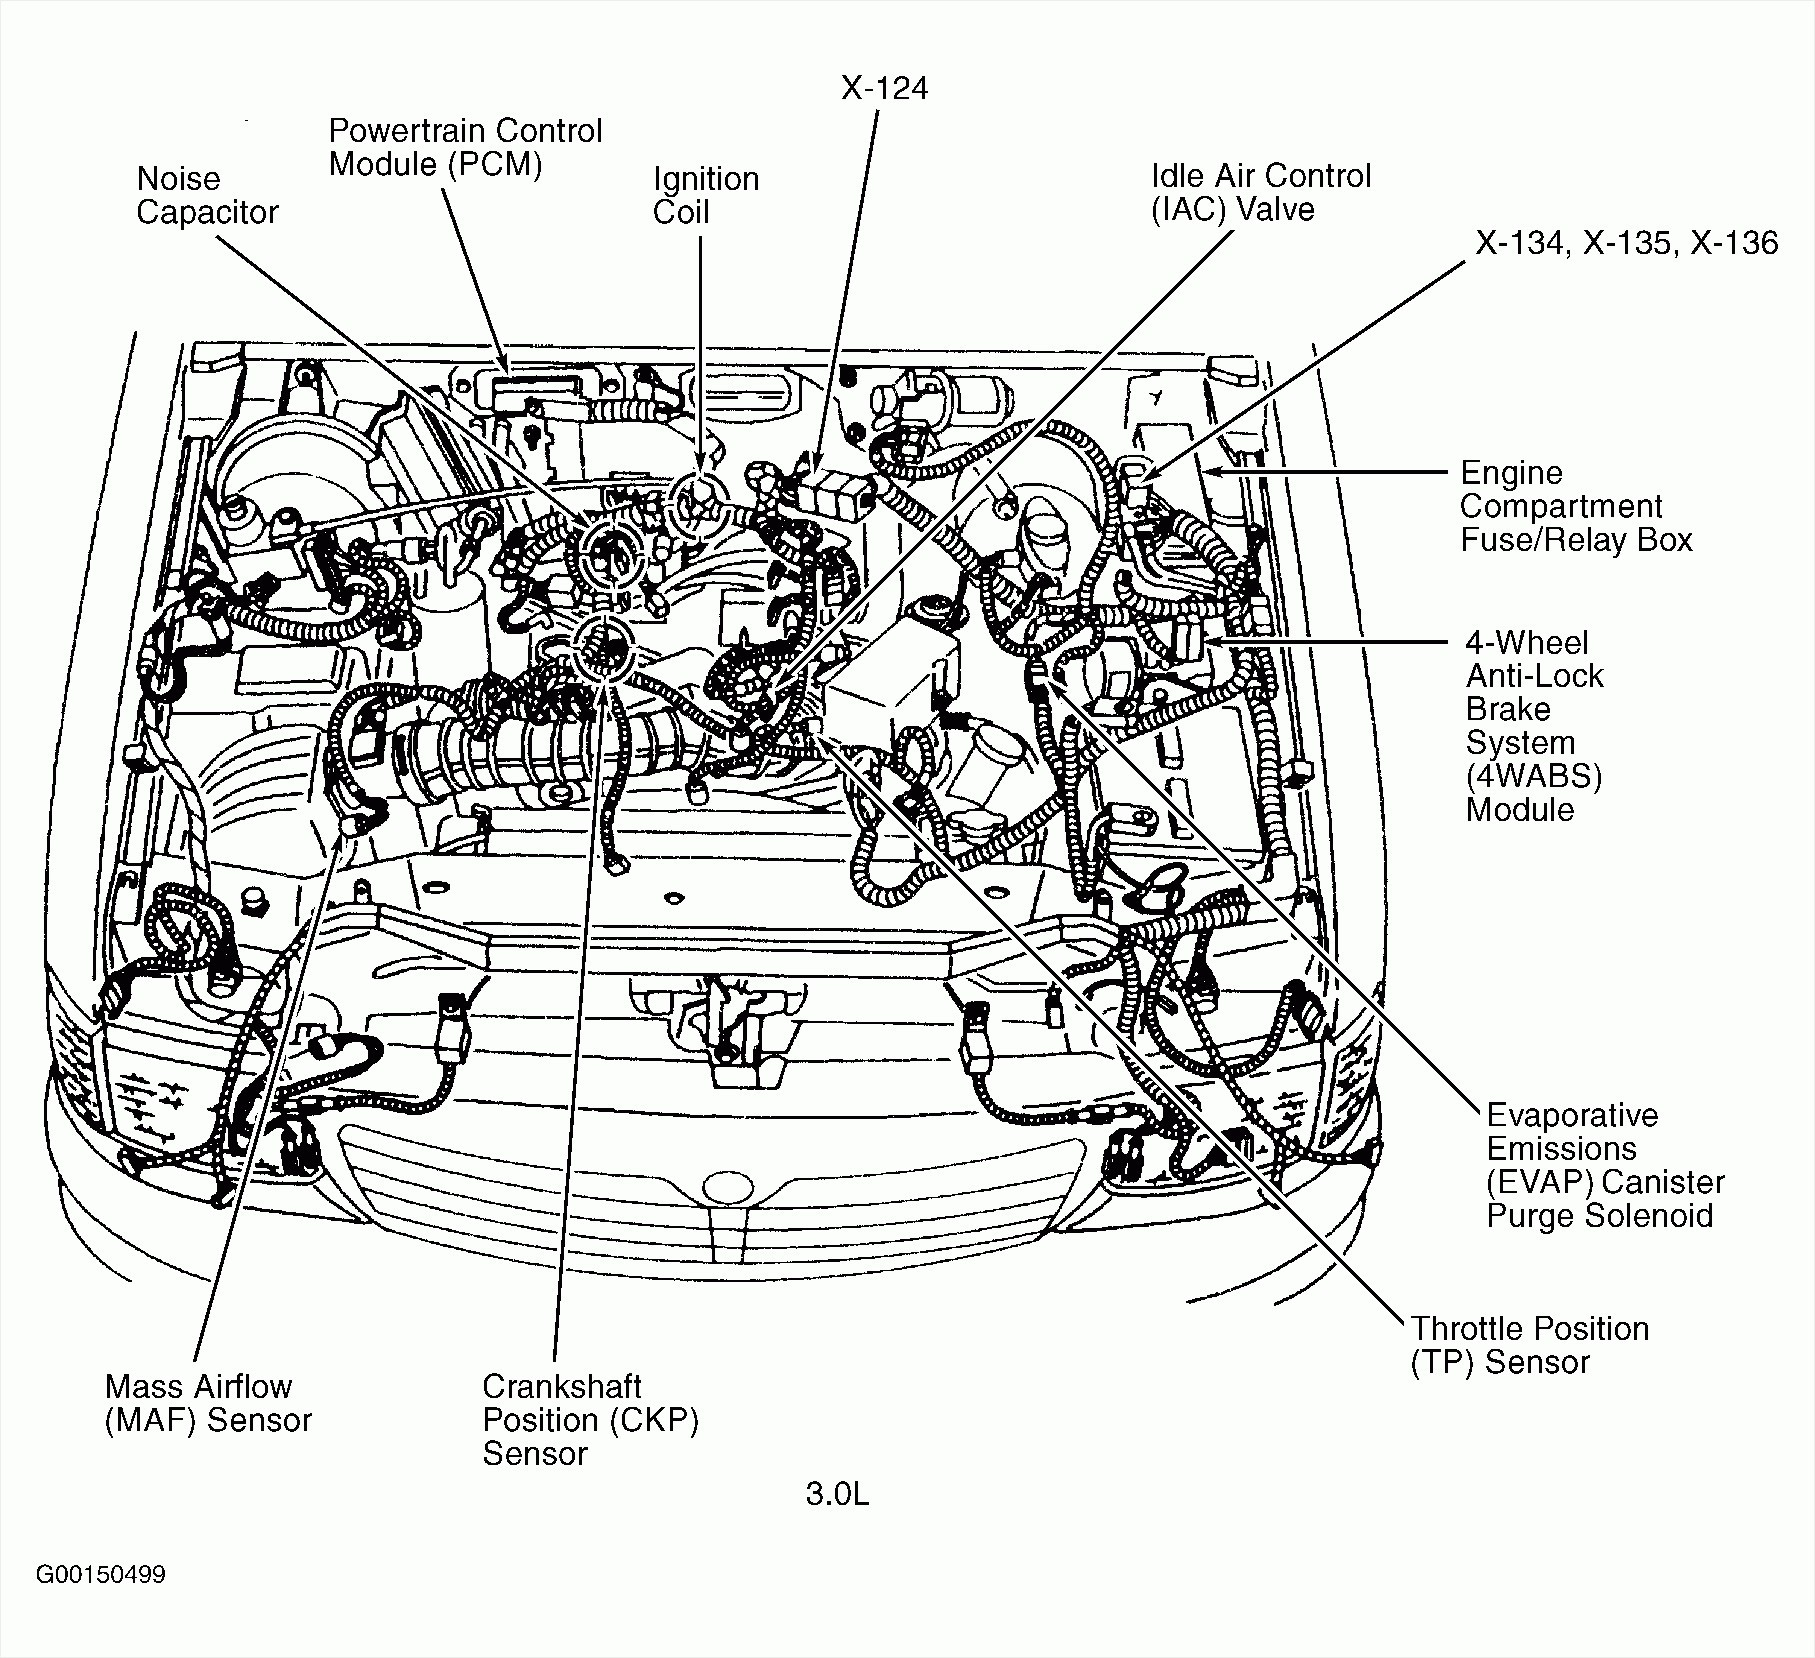 1997 Rav4 Engine Diagram - Information Schematics Wiring Diagrams Navistar Wiring Diagrams on